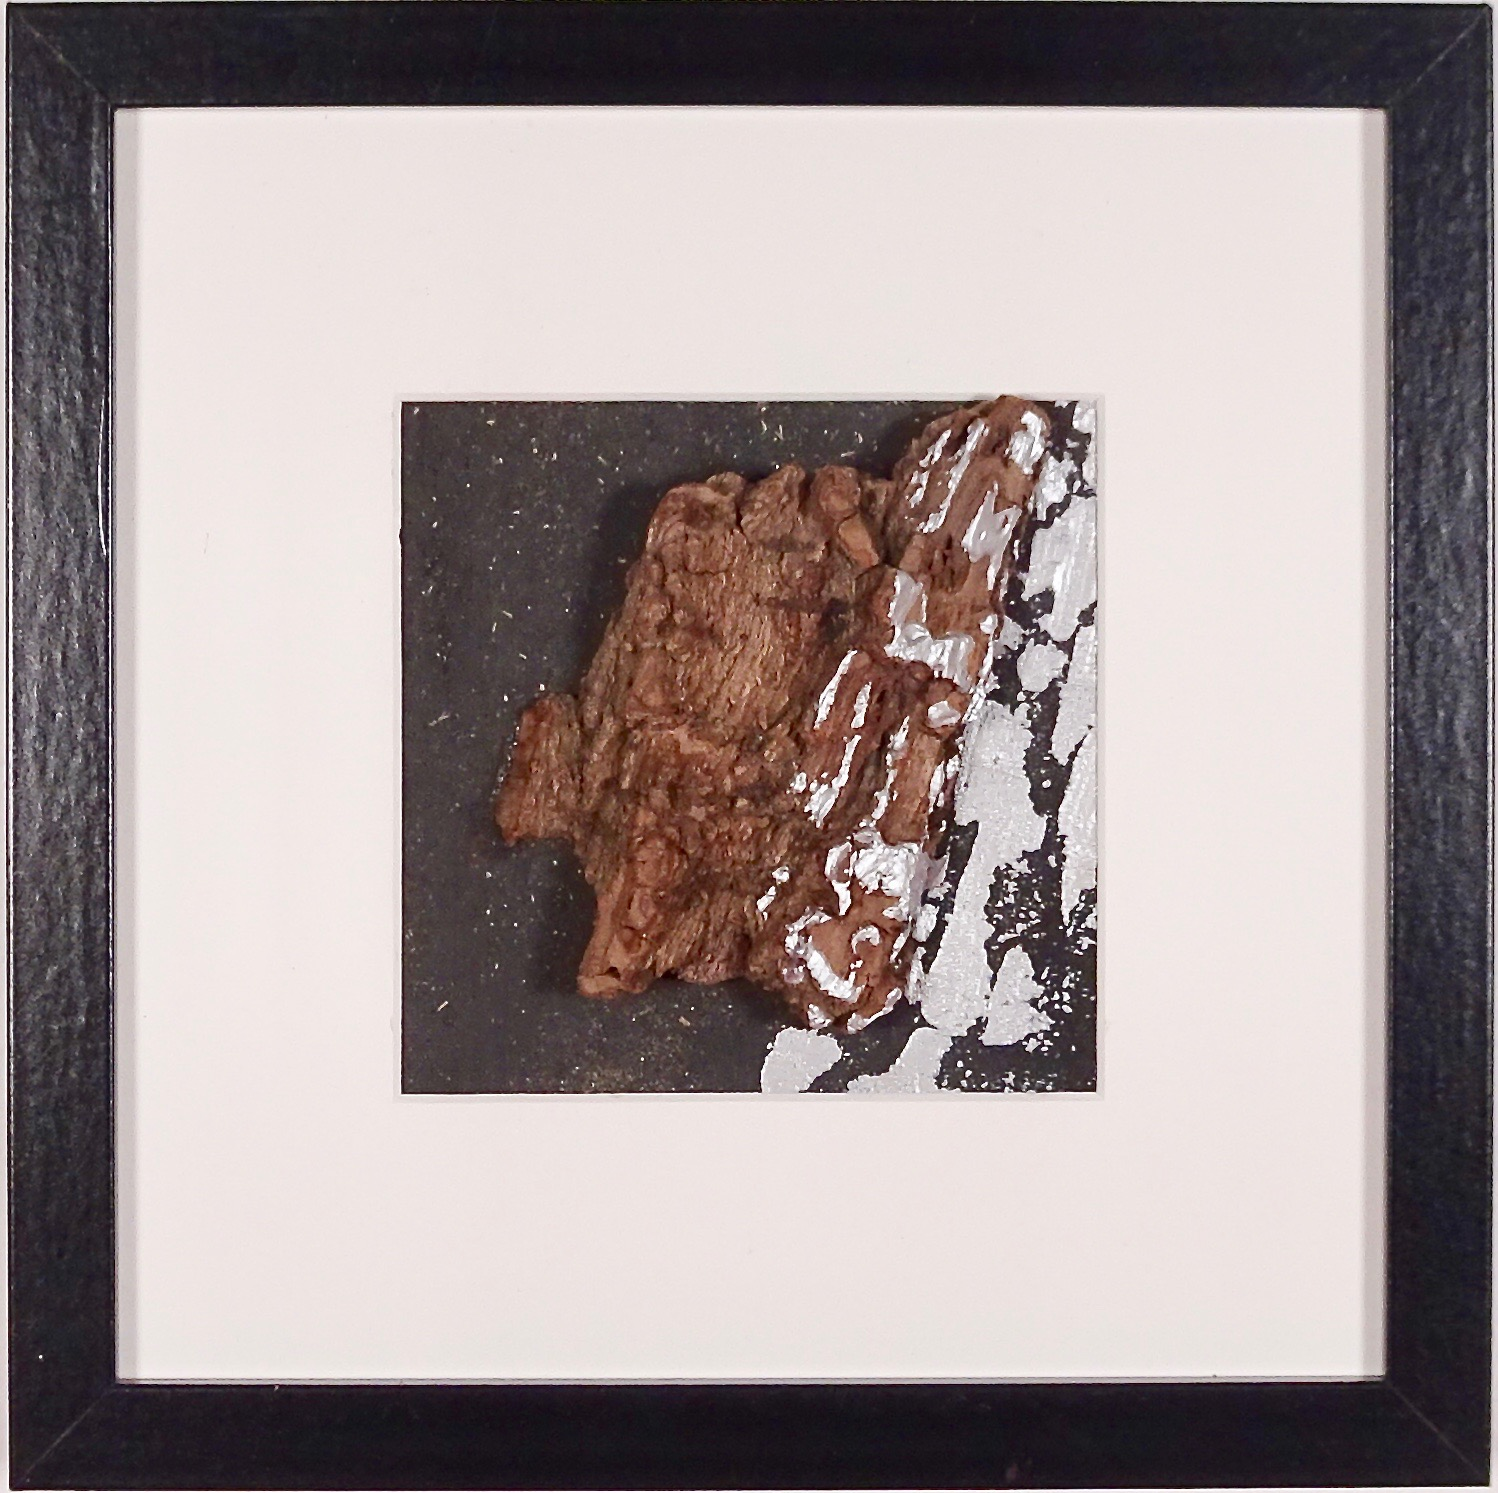 NAUFRAGIO #3 - Beached wood, acrylic, sea water on cardboard, 25x25cmm with passe-partout frame - AVAILABLE